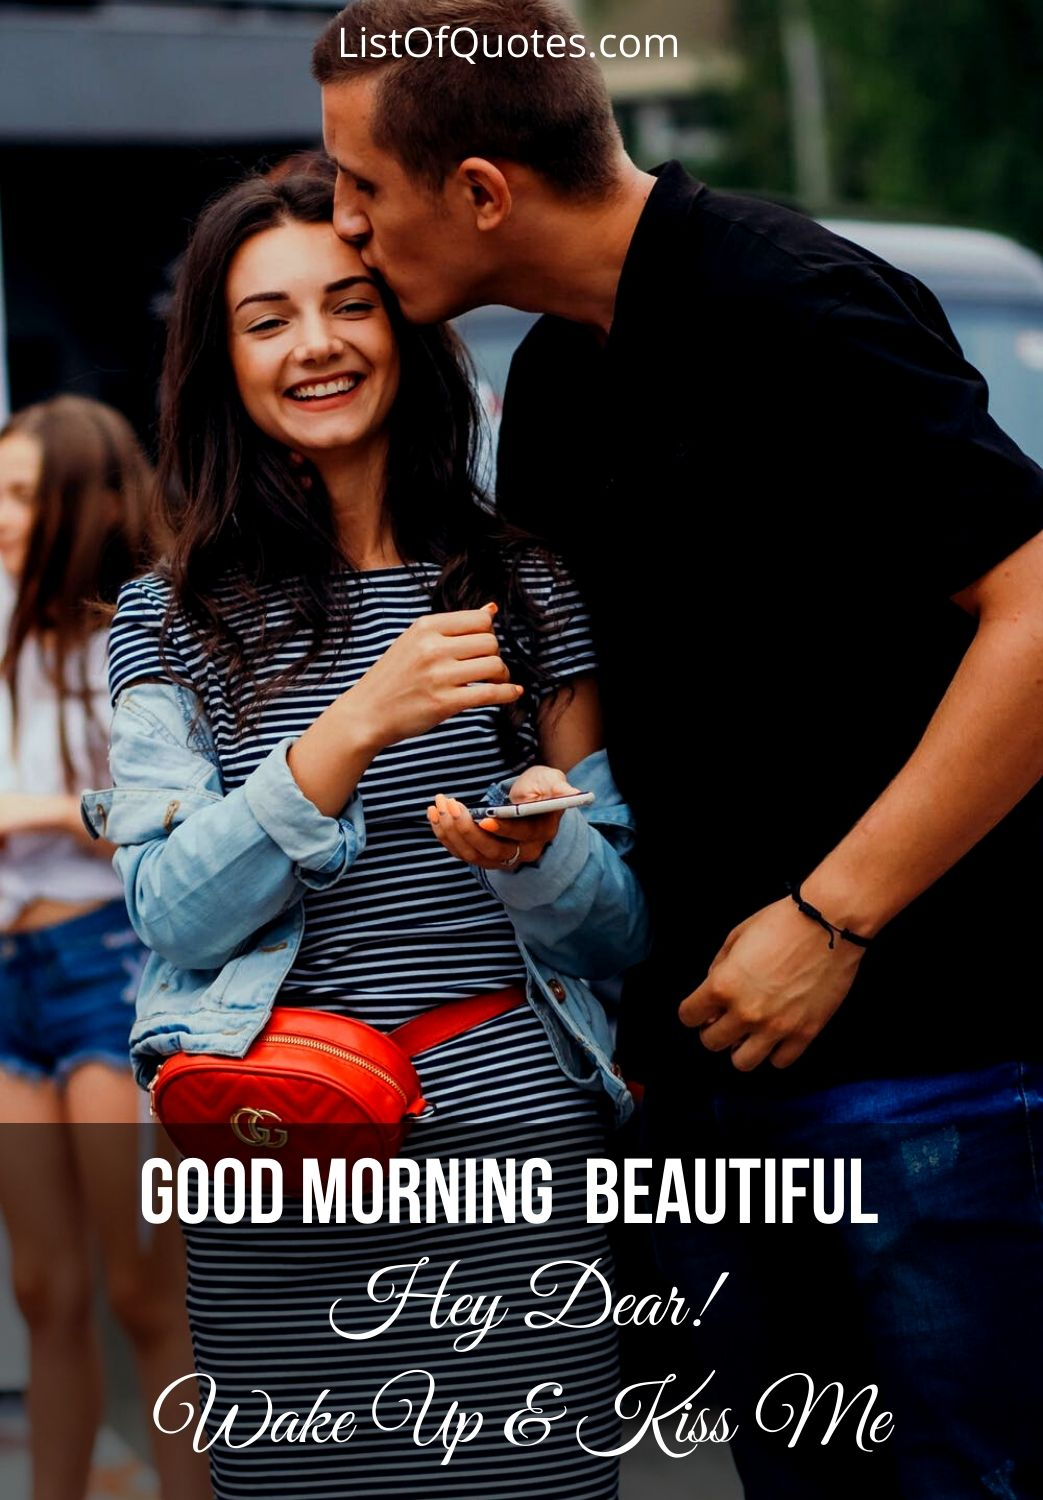 Romantic Good Morning Kiss Images For Him/Her girlfriend boyfriend